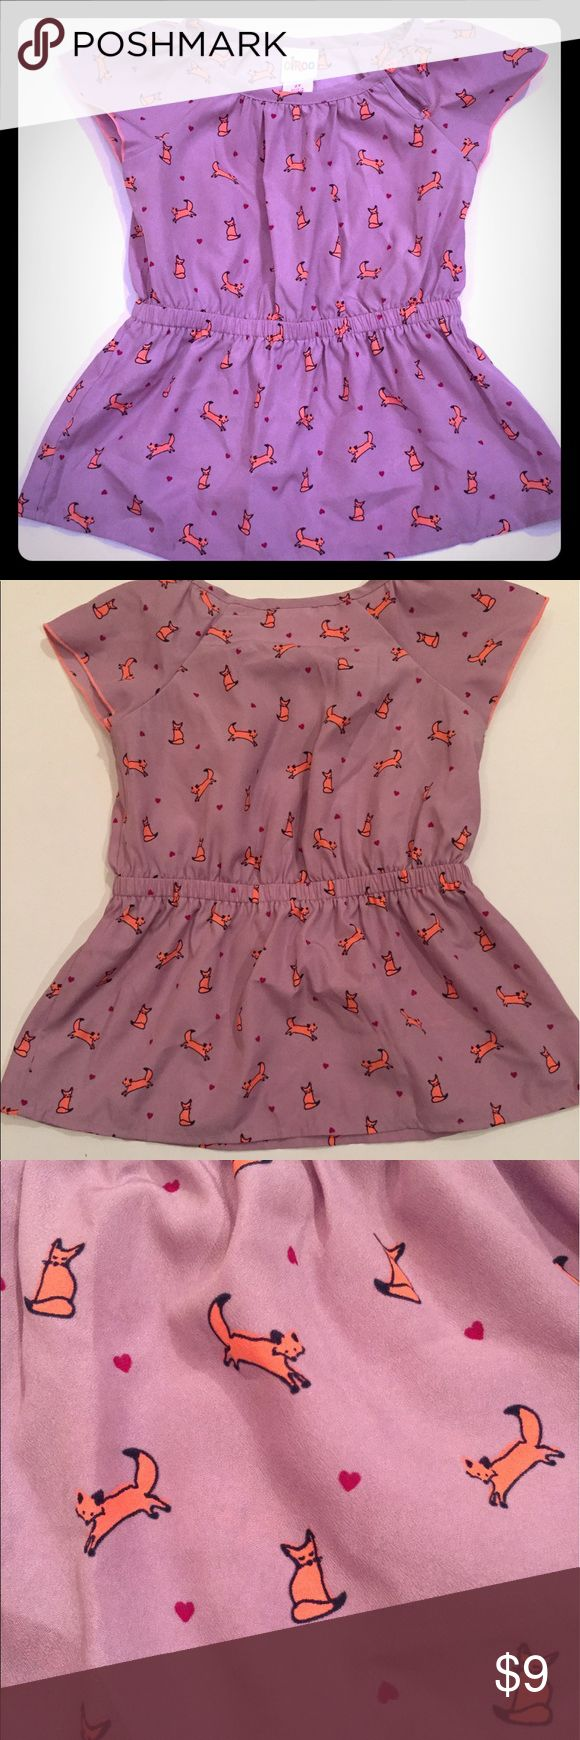 2T Purple Fox top 2T Purple Fox top in excellent condition. From a smoke free and pet free home. Circo Shirts & Tops Blouses